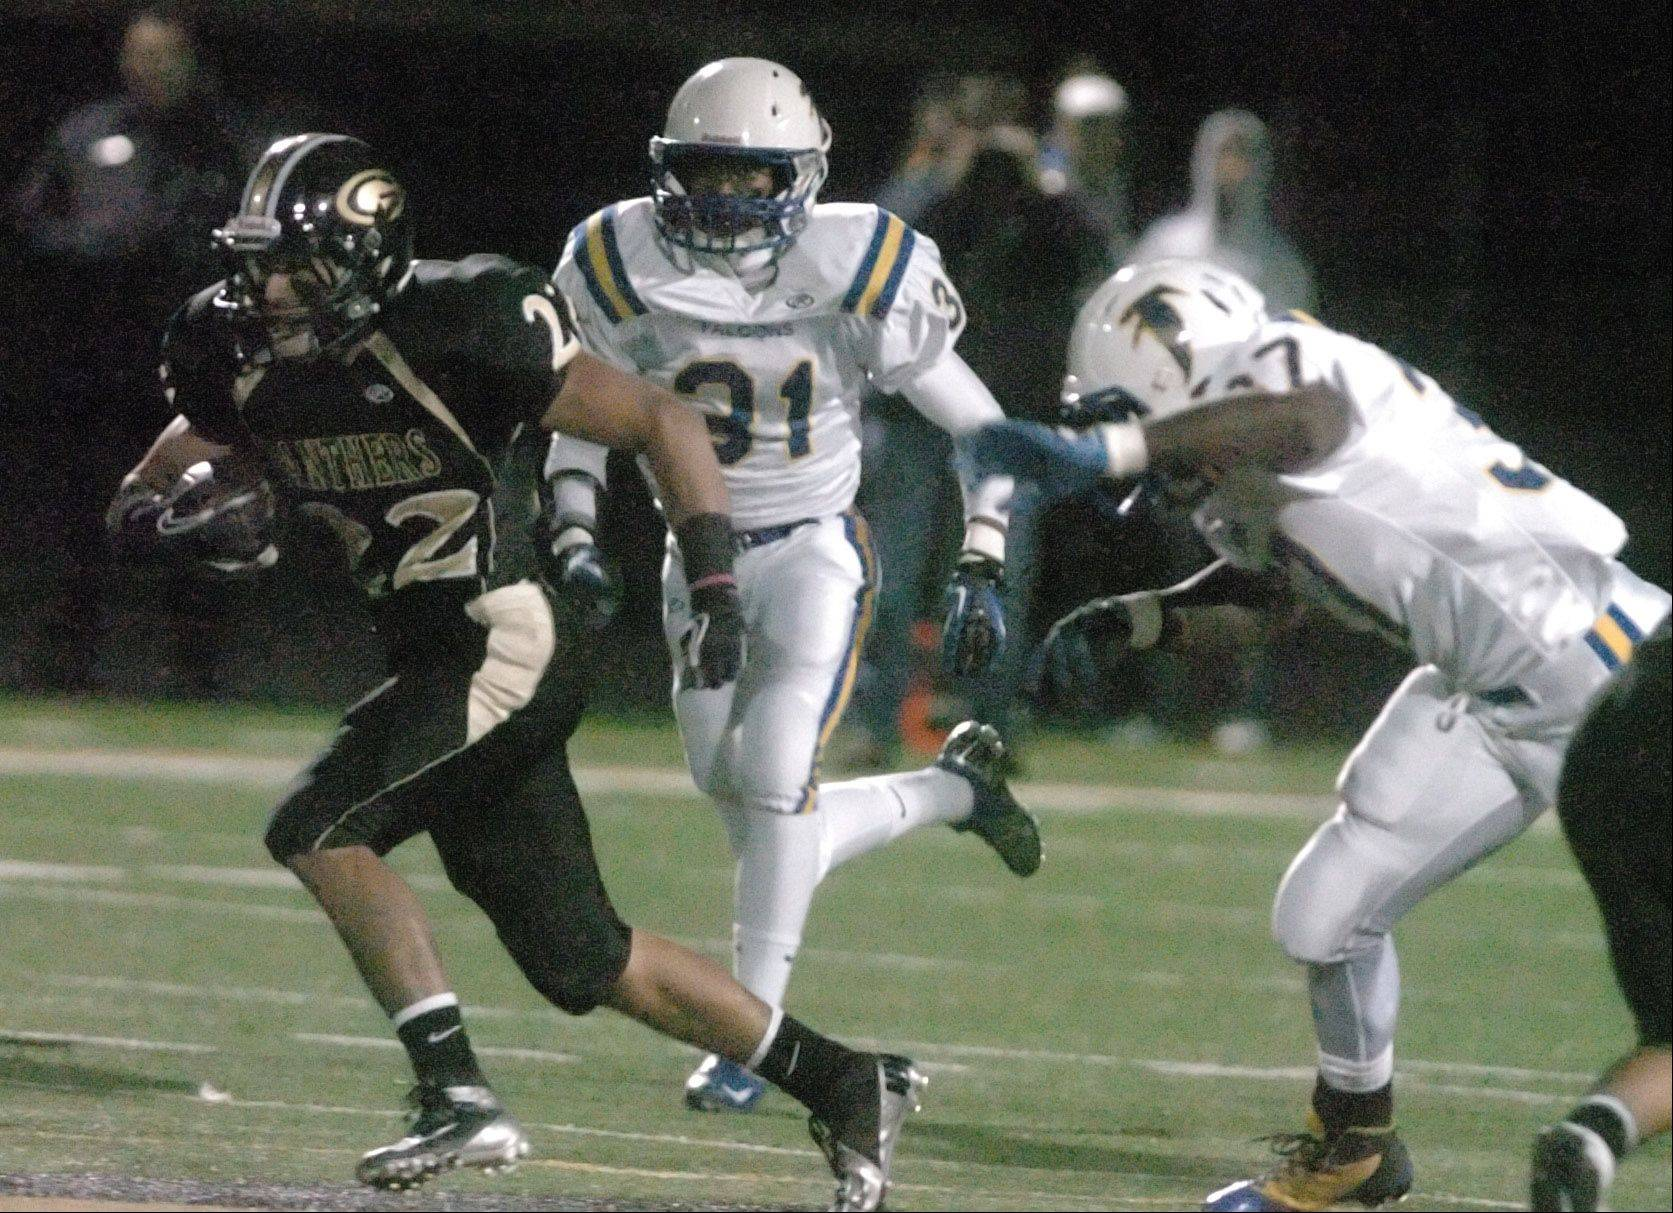 Mario Rodriguez of Glenbard North is pursued by Wheaton North defenders.